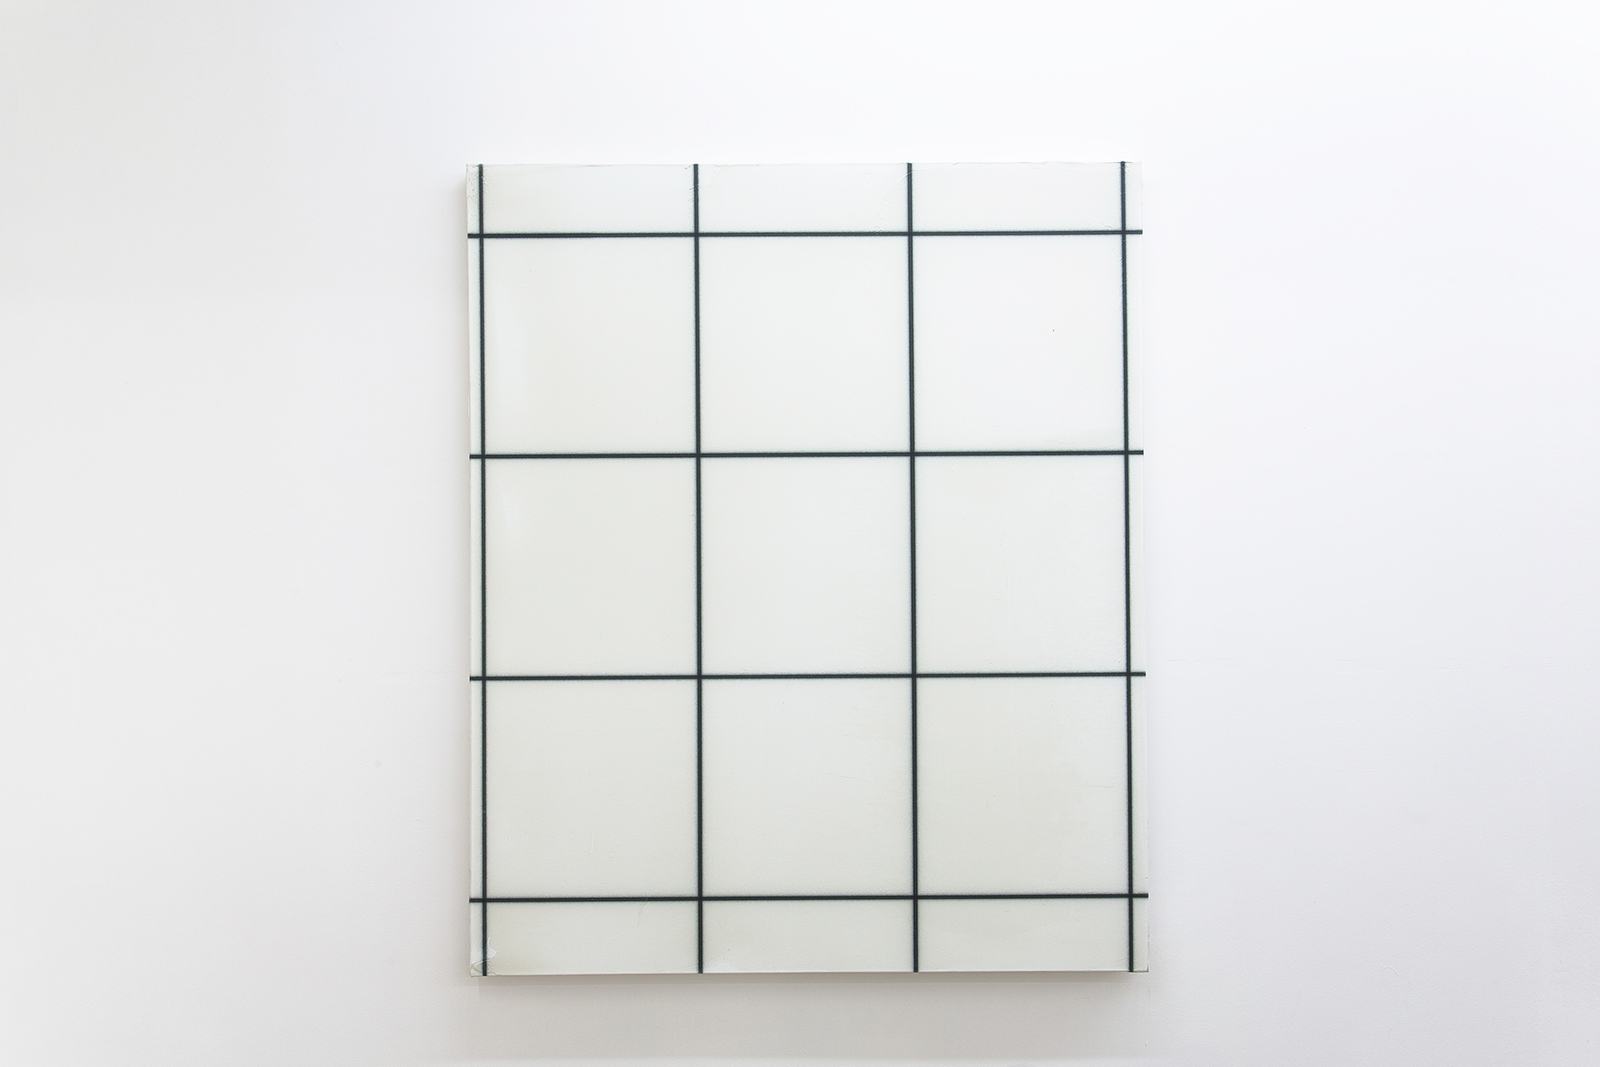 Thomas Baumann Untitled, 2014-2015 acrylic on canvas 120 x 100 cm